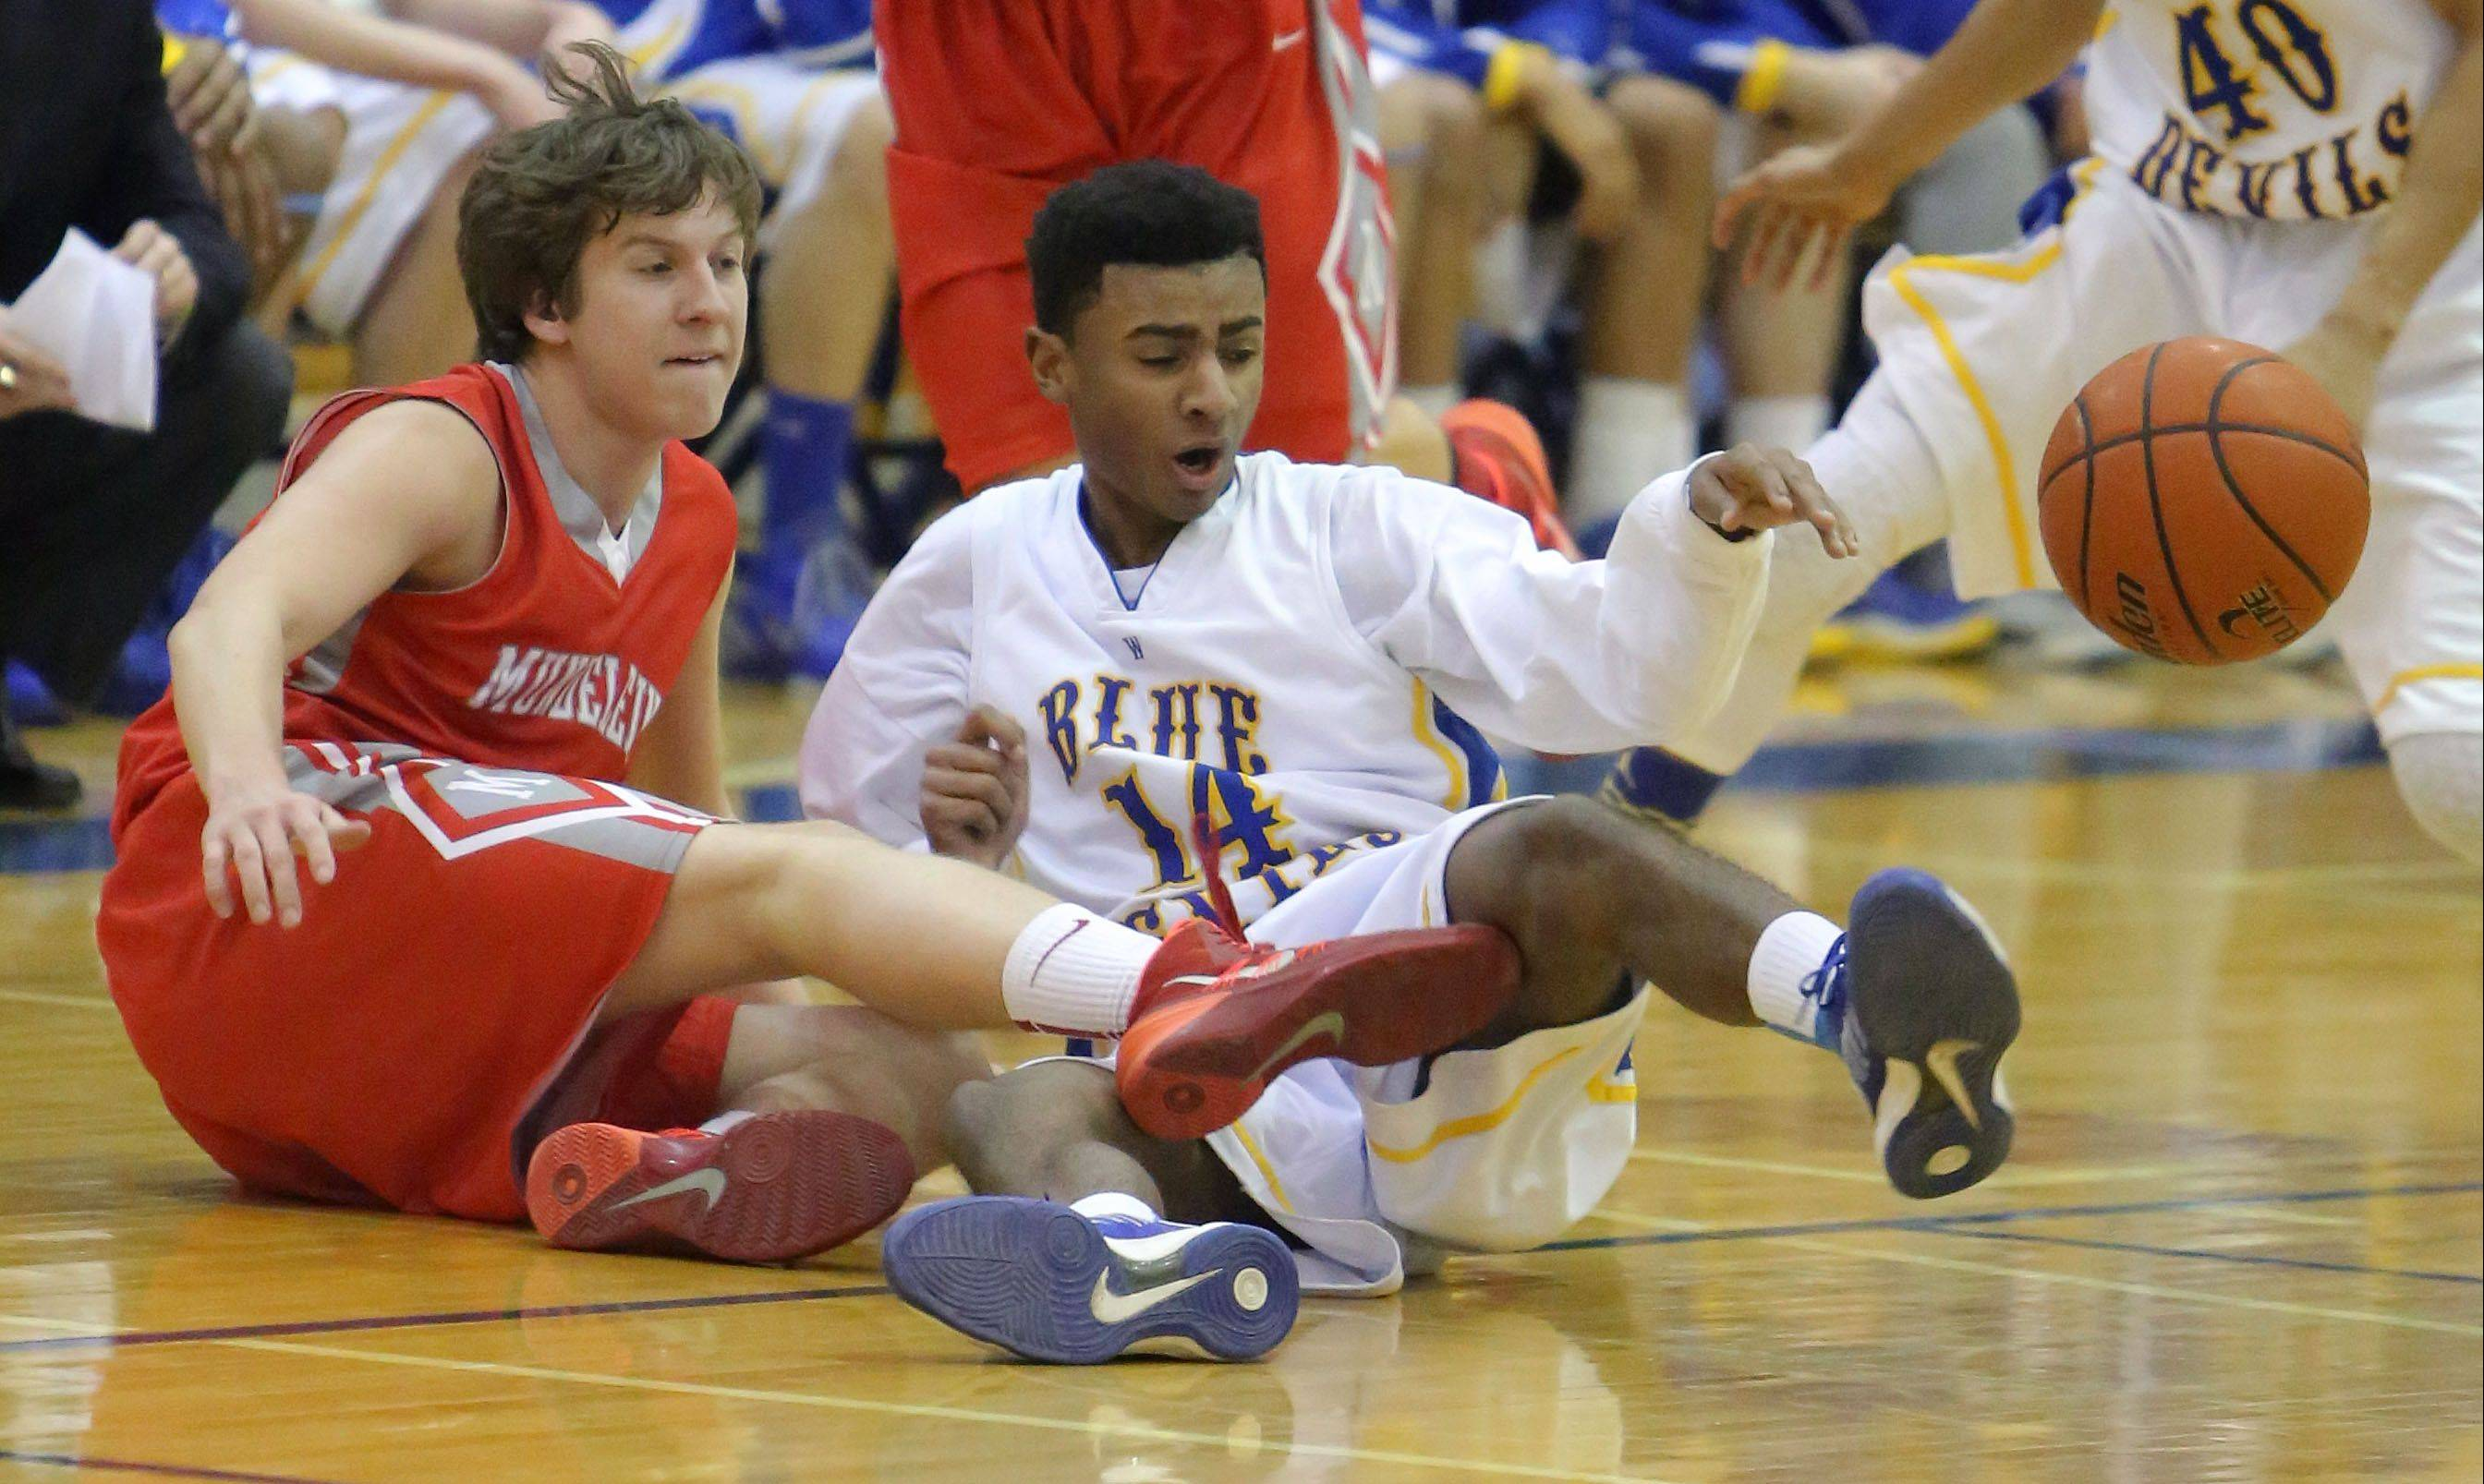 Mundelein's Sam Nelson, left, and Warren's Adrian Deere scramble for a loose ball on Wednesday night at Warren.